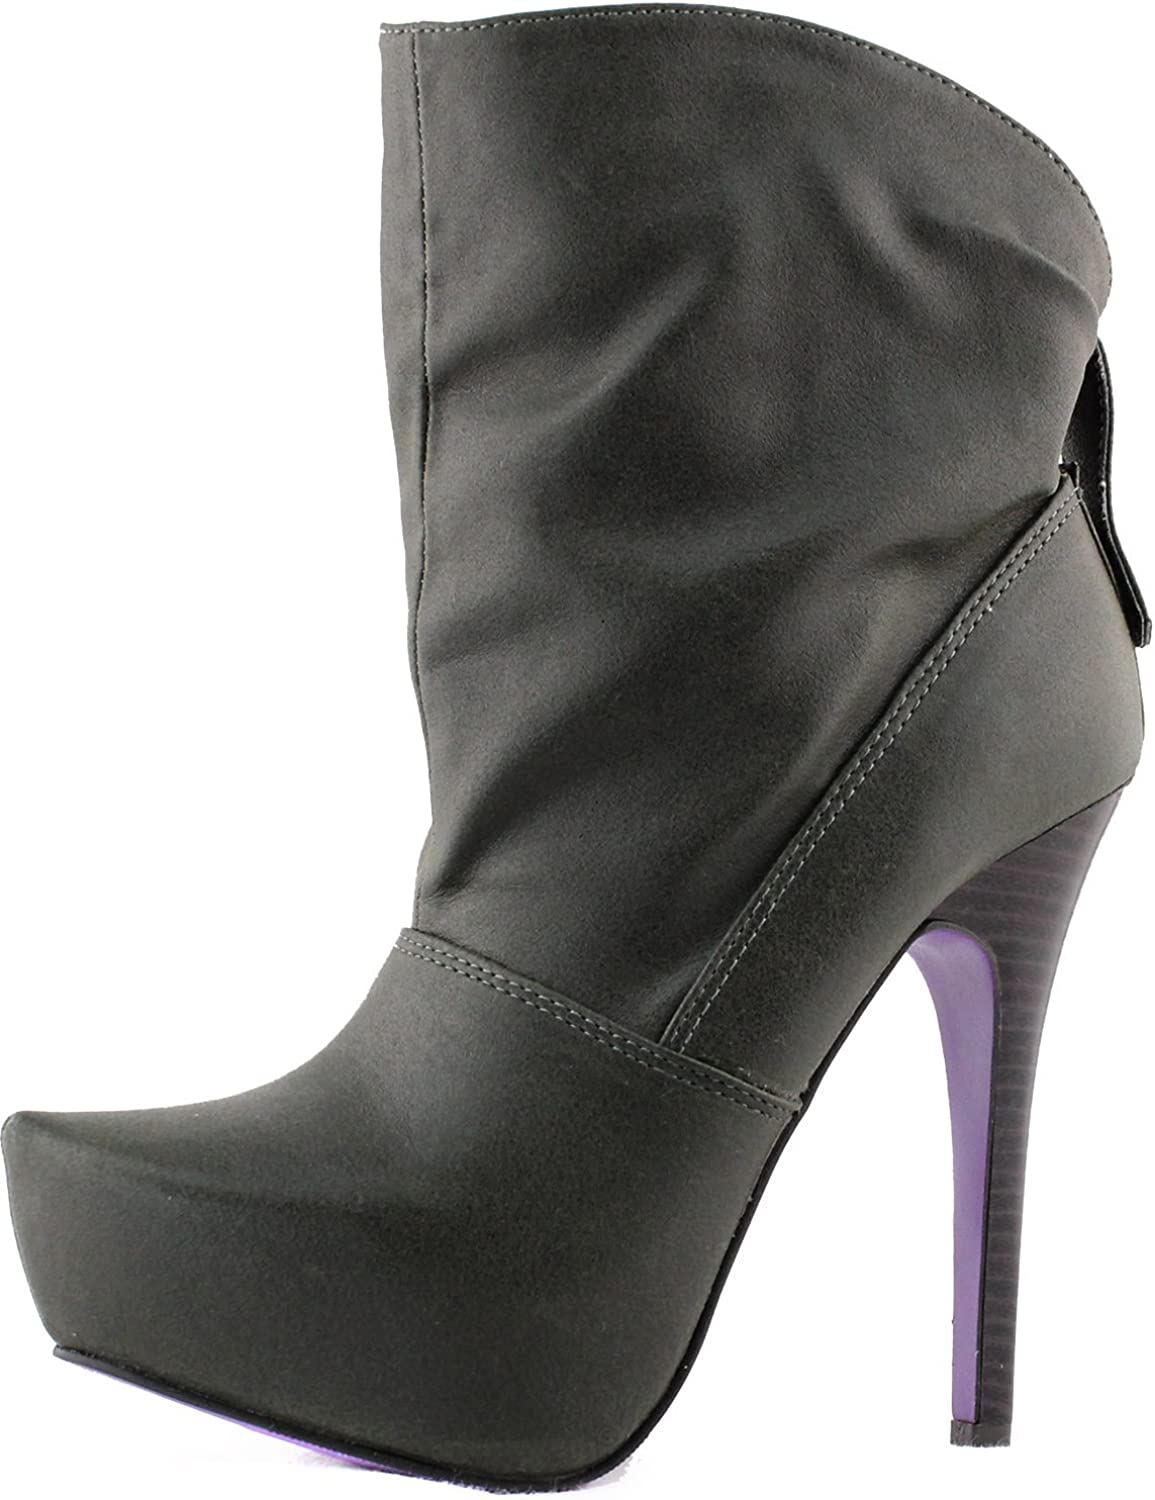 Women's Platform Ankle High Booties Mid Calf Buckle Back Pointy Toe Fashion shoes